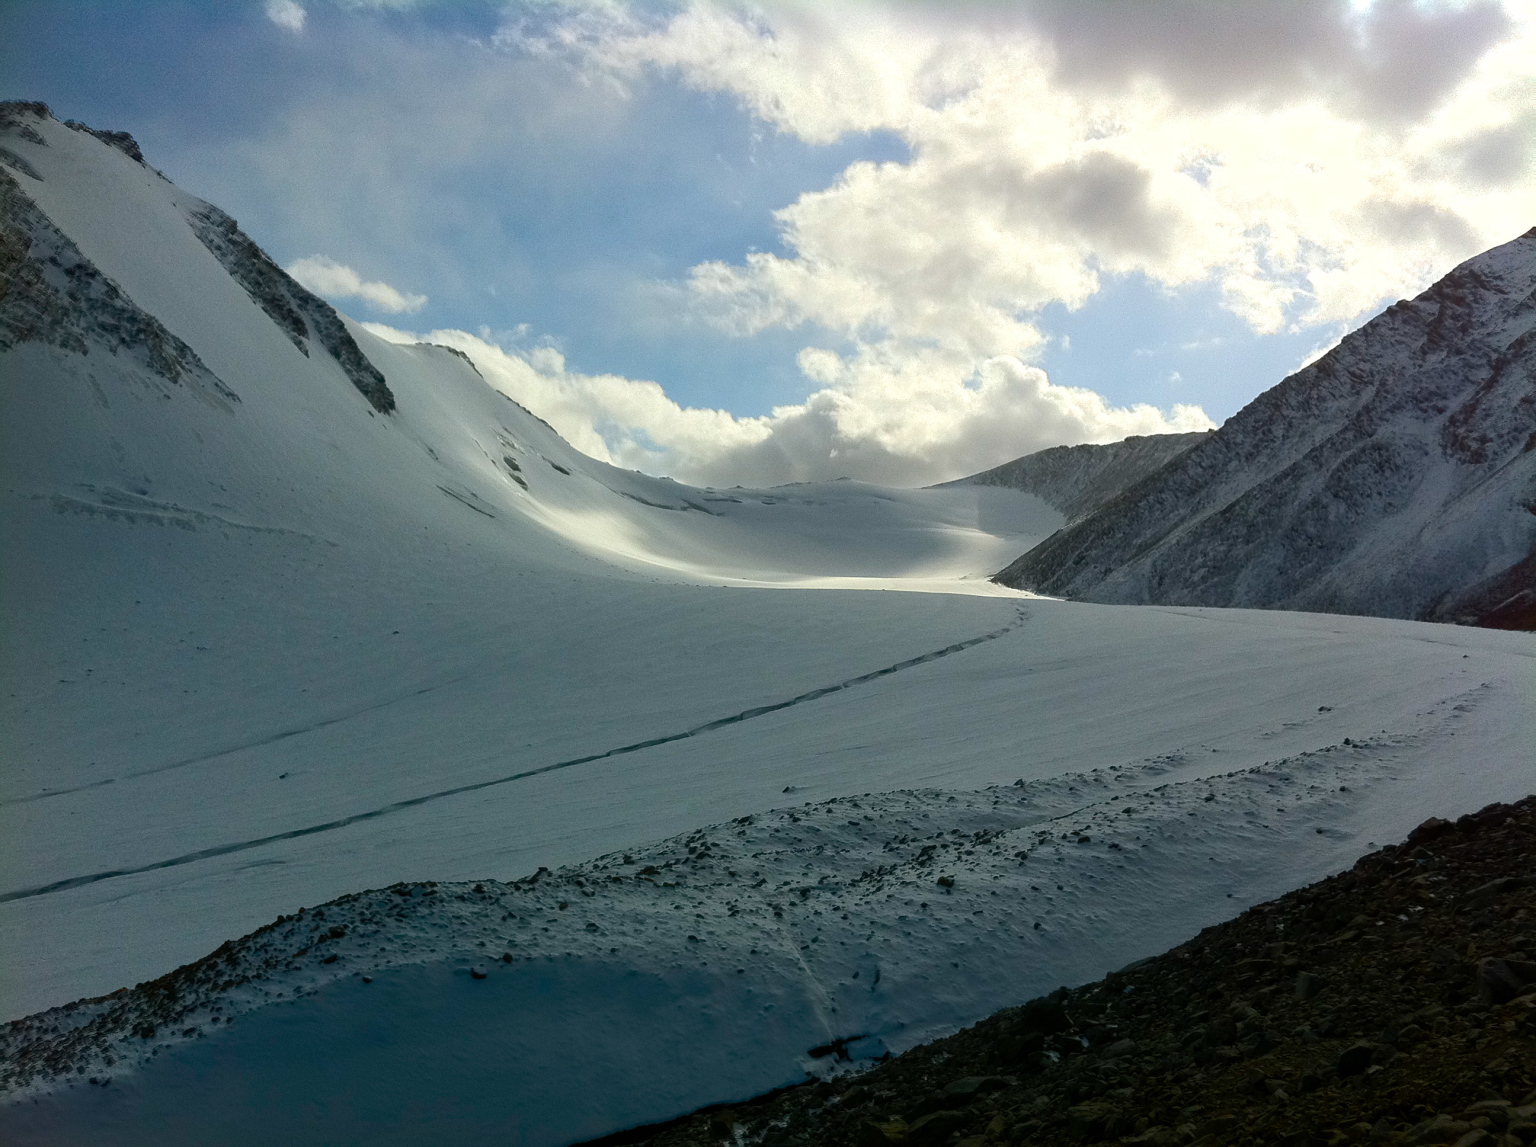 The glacier's elevation ranges from 3740 meters to 4500 meters.